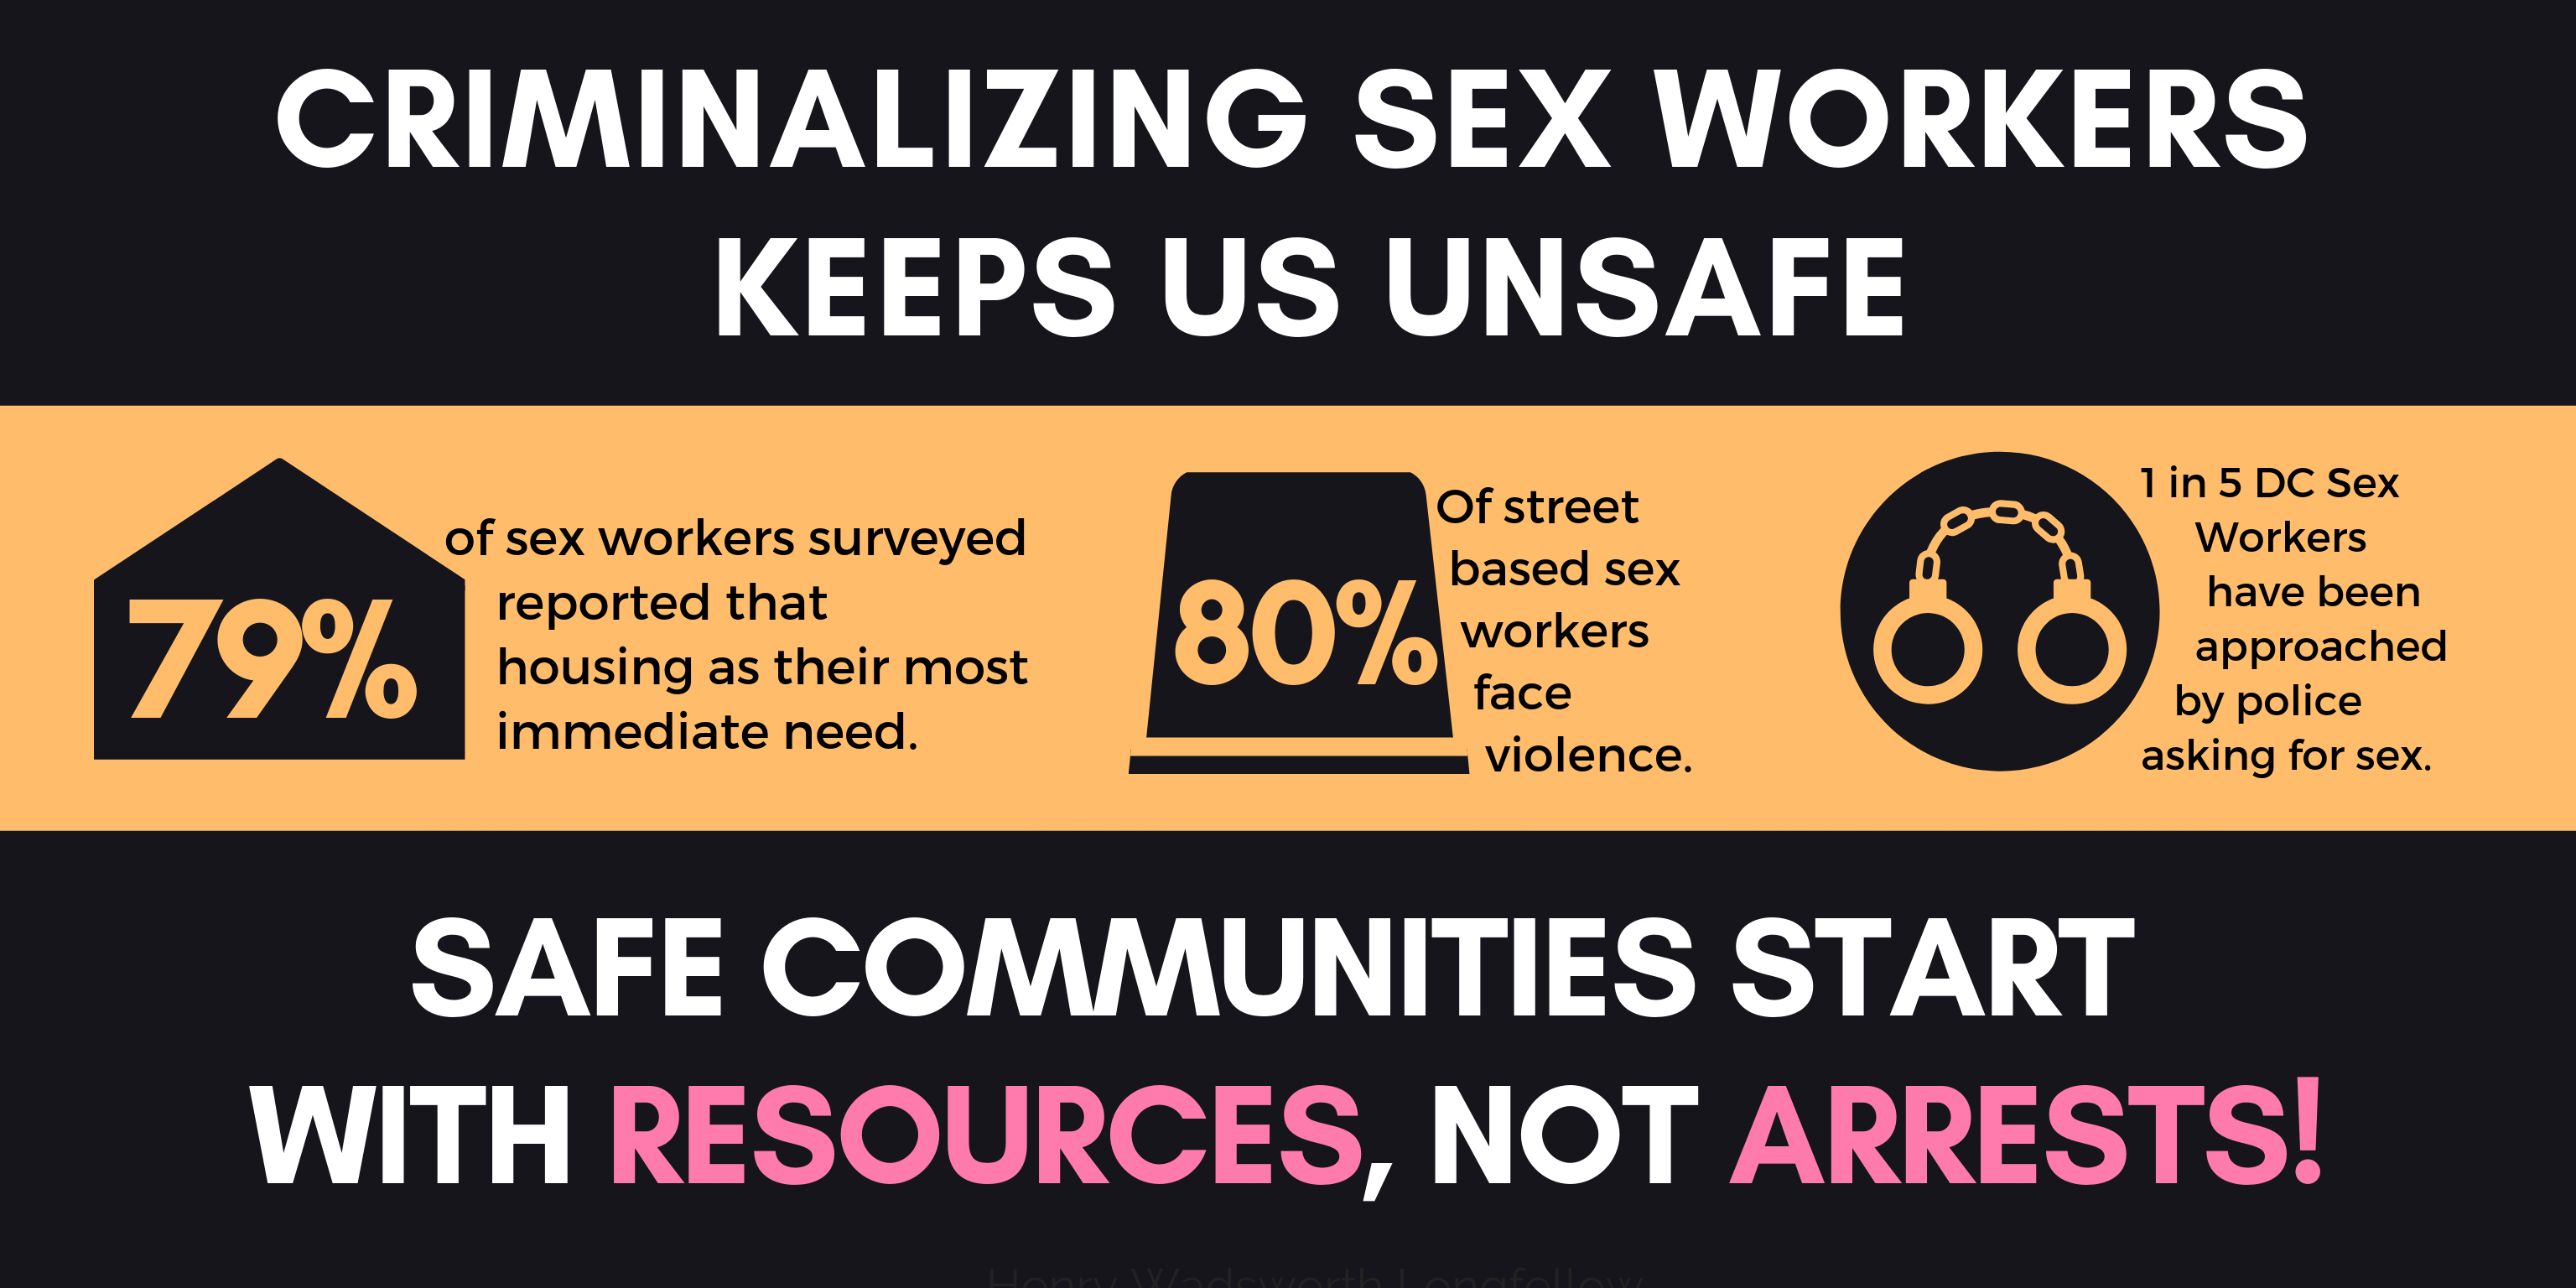 Organization Sign On Letter in support to Decriminalize Sex Work!